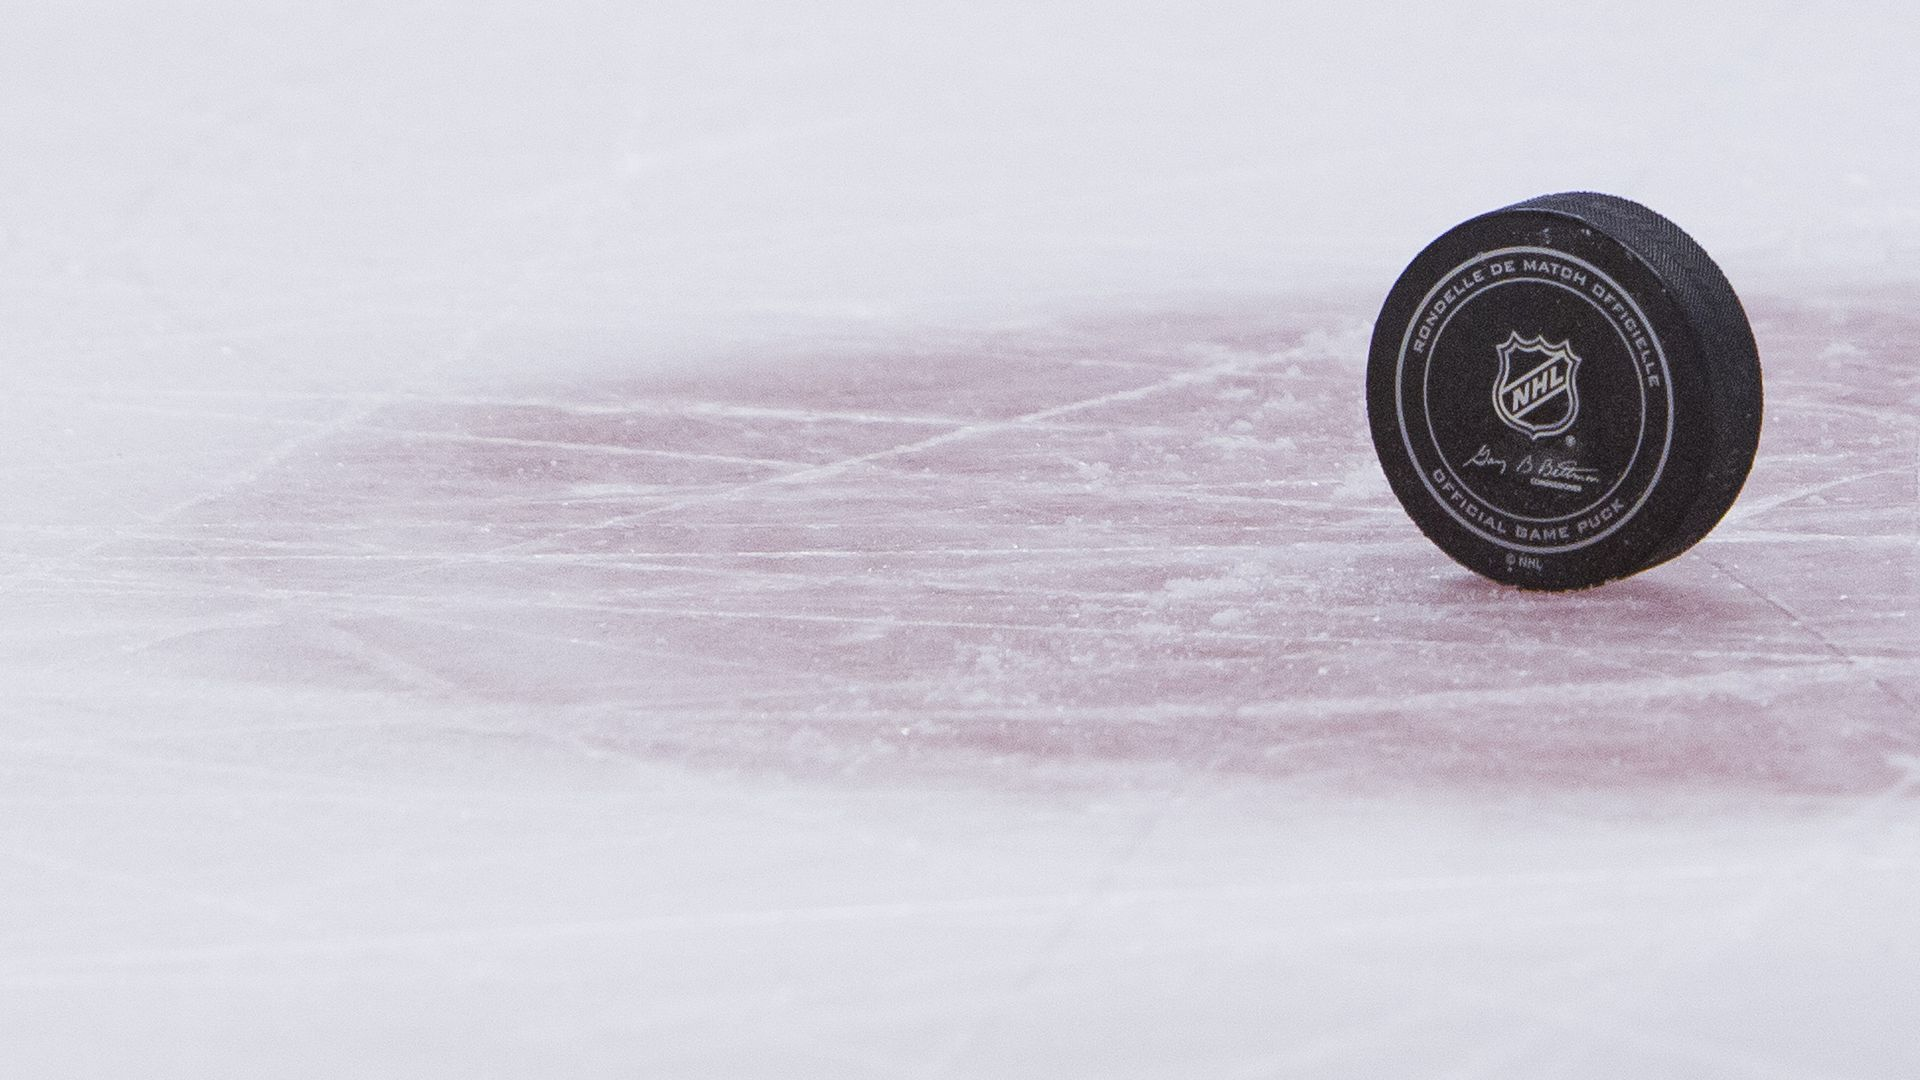 Hockey puck upright on ice